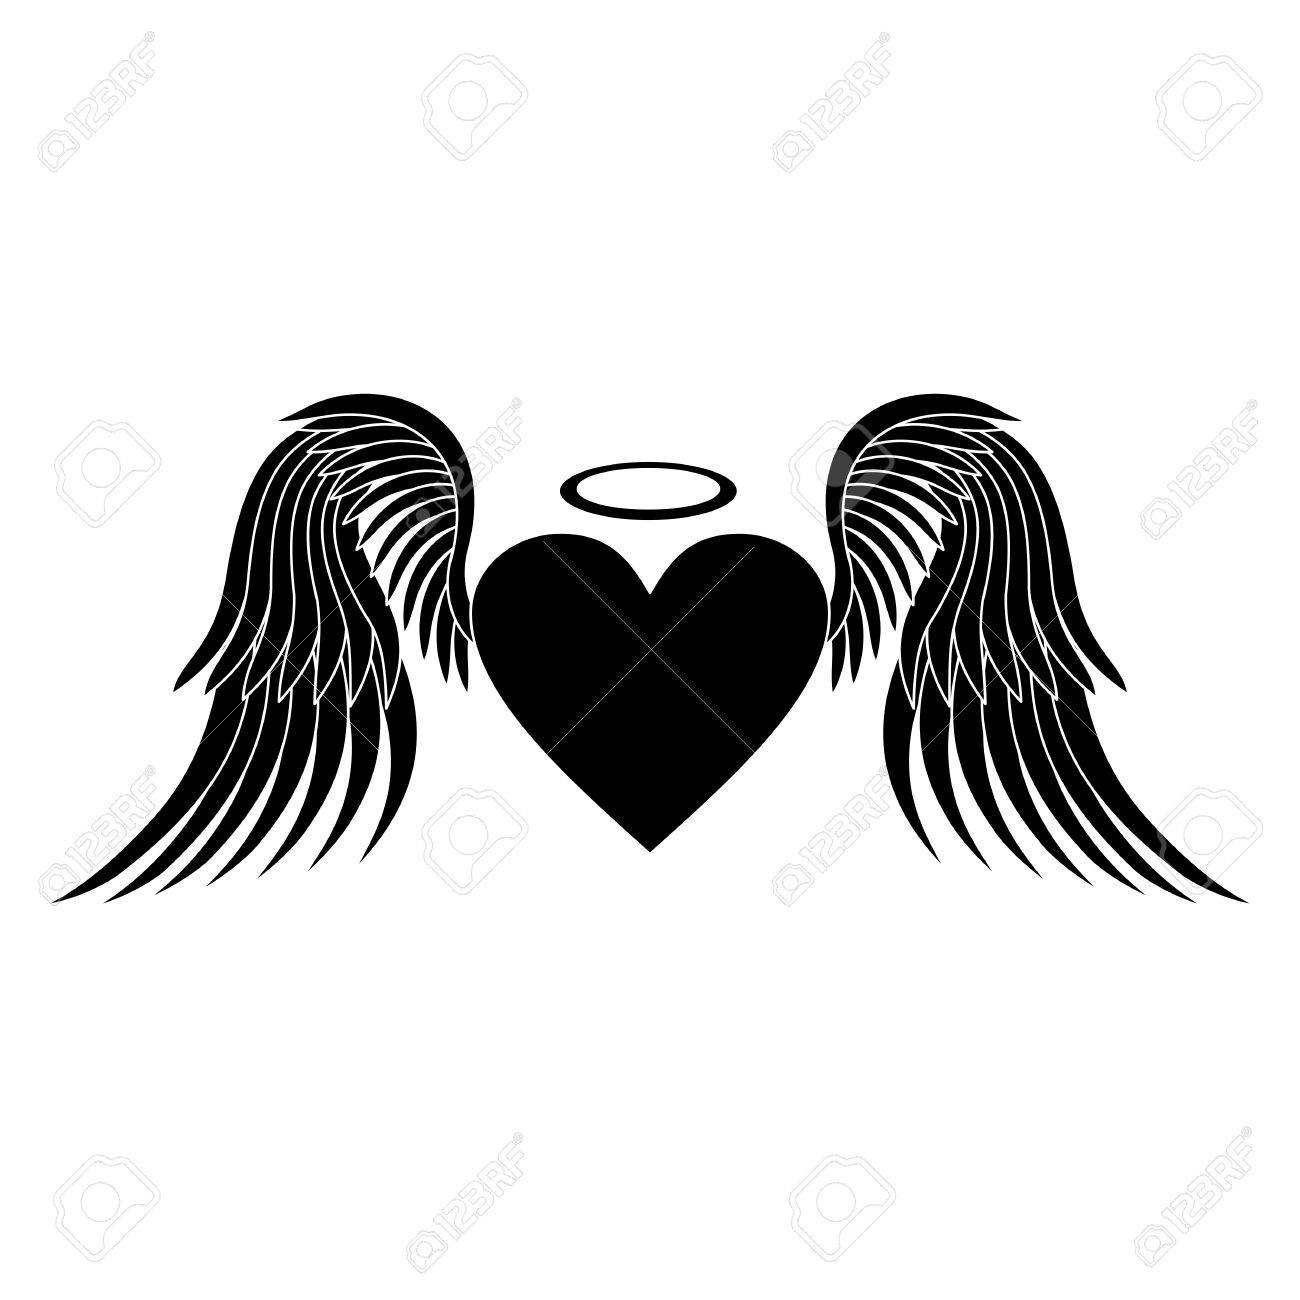 Heart With Wings Heart Silhouette Heart Vector Icon Heart